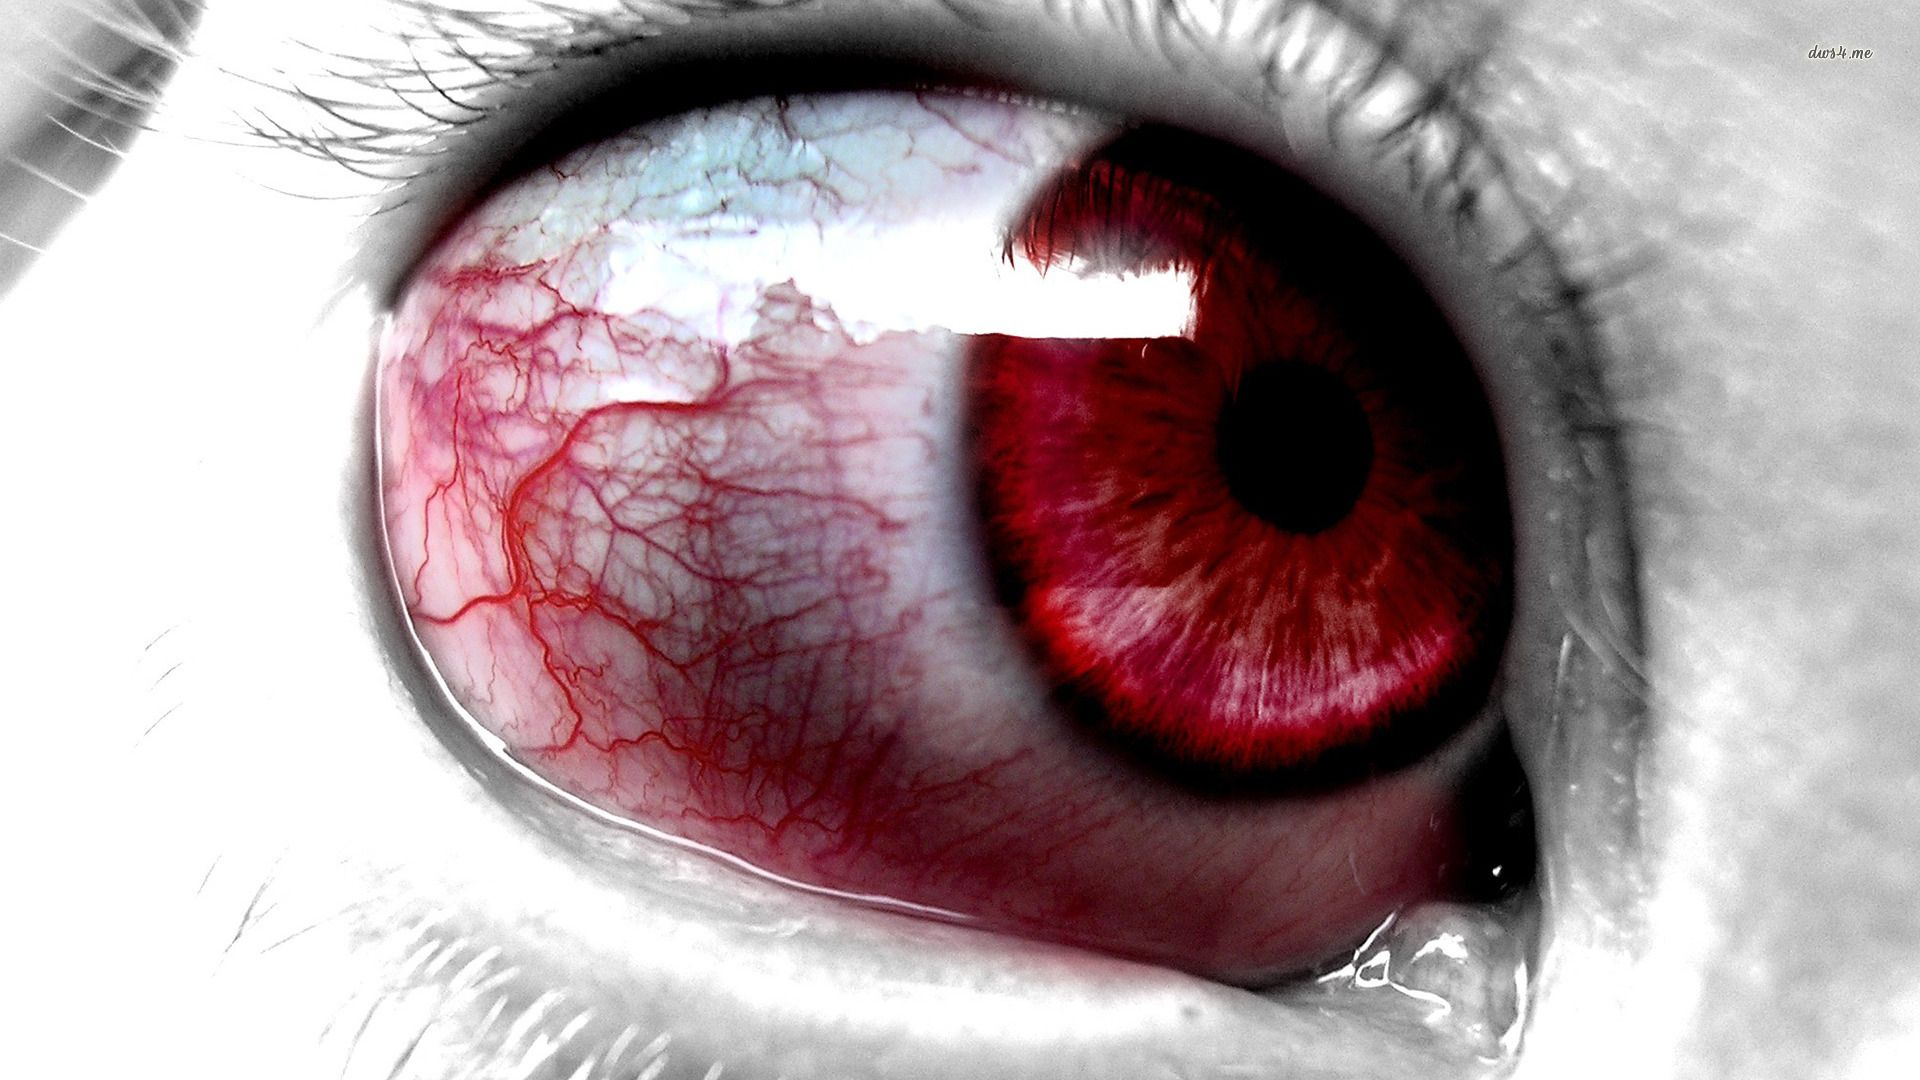 bloody eyes hd wallpaper - blood wallpaper eye wallpaper | wallpaper